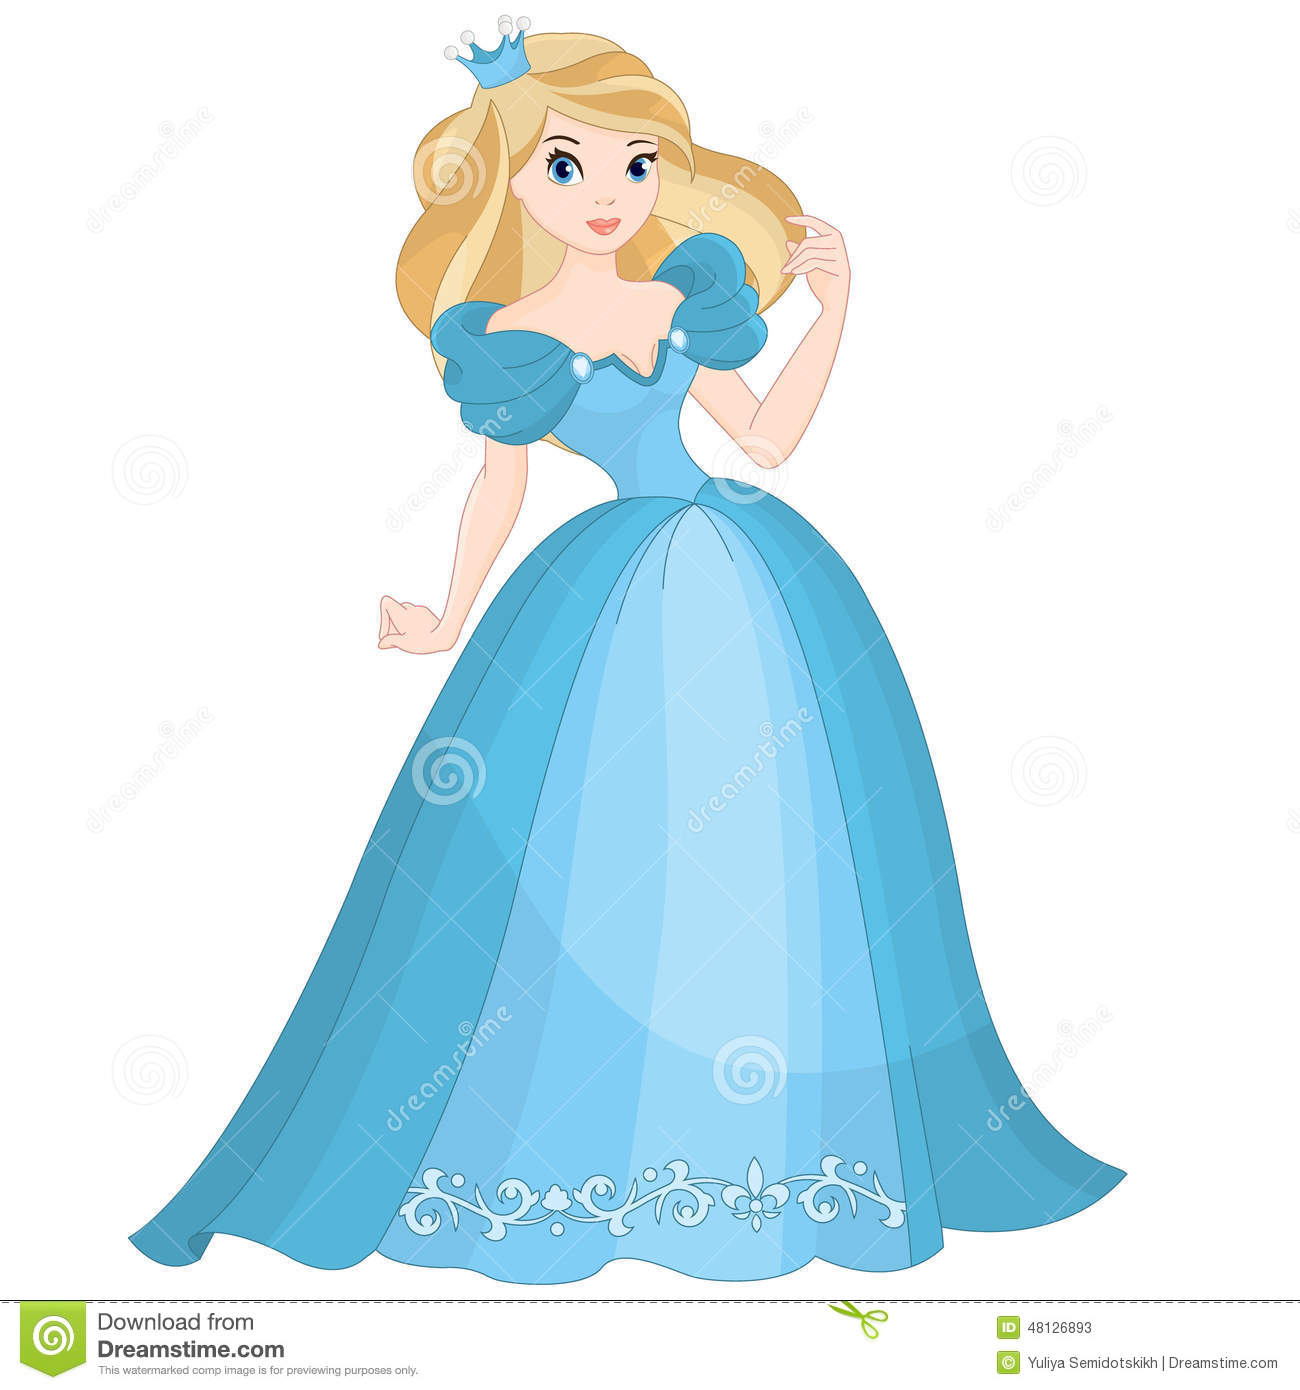 Princess dress free download. Beautiful clipart ball gown